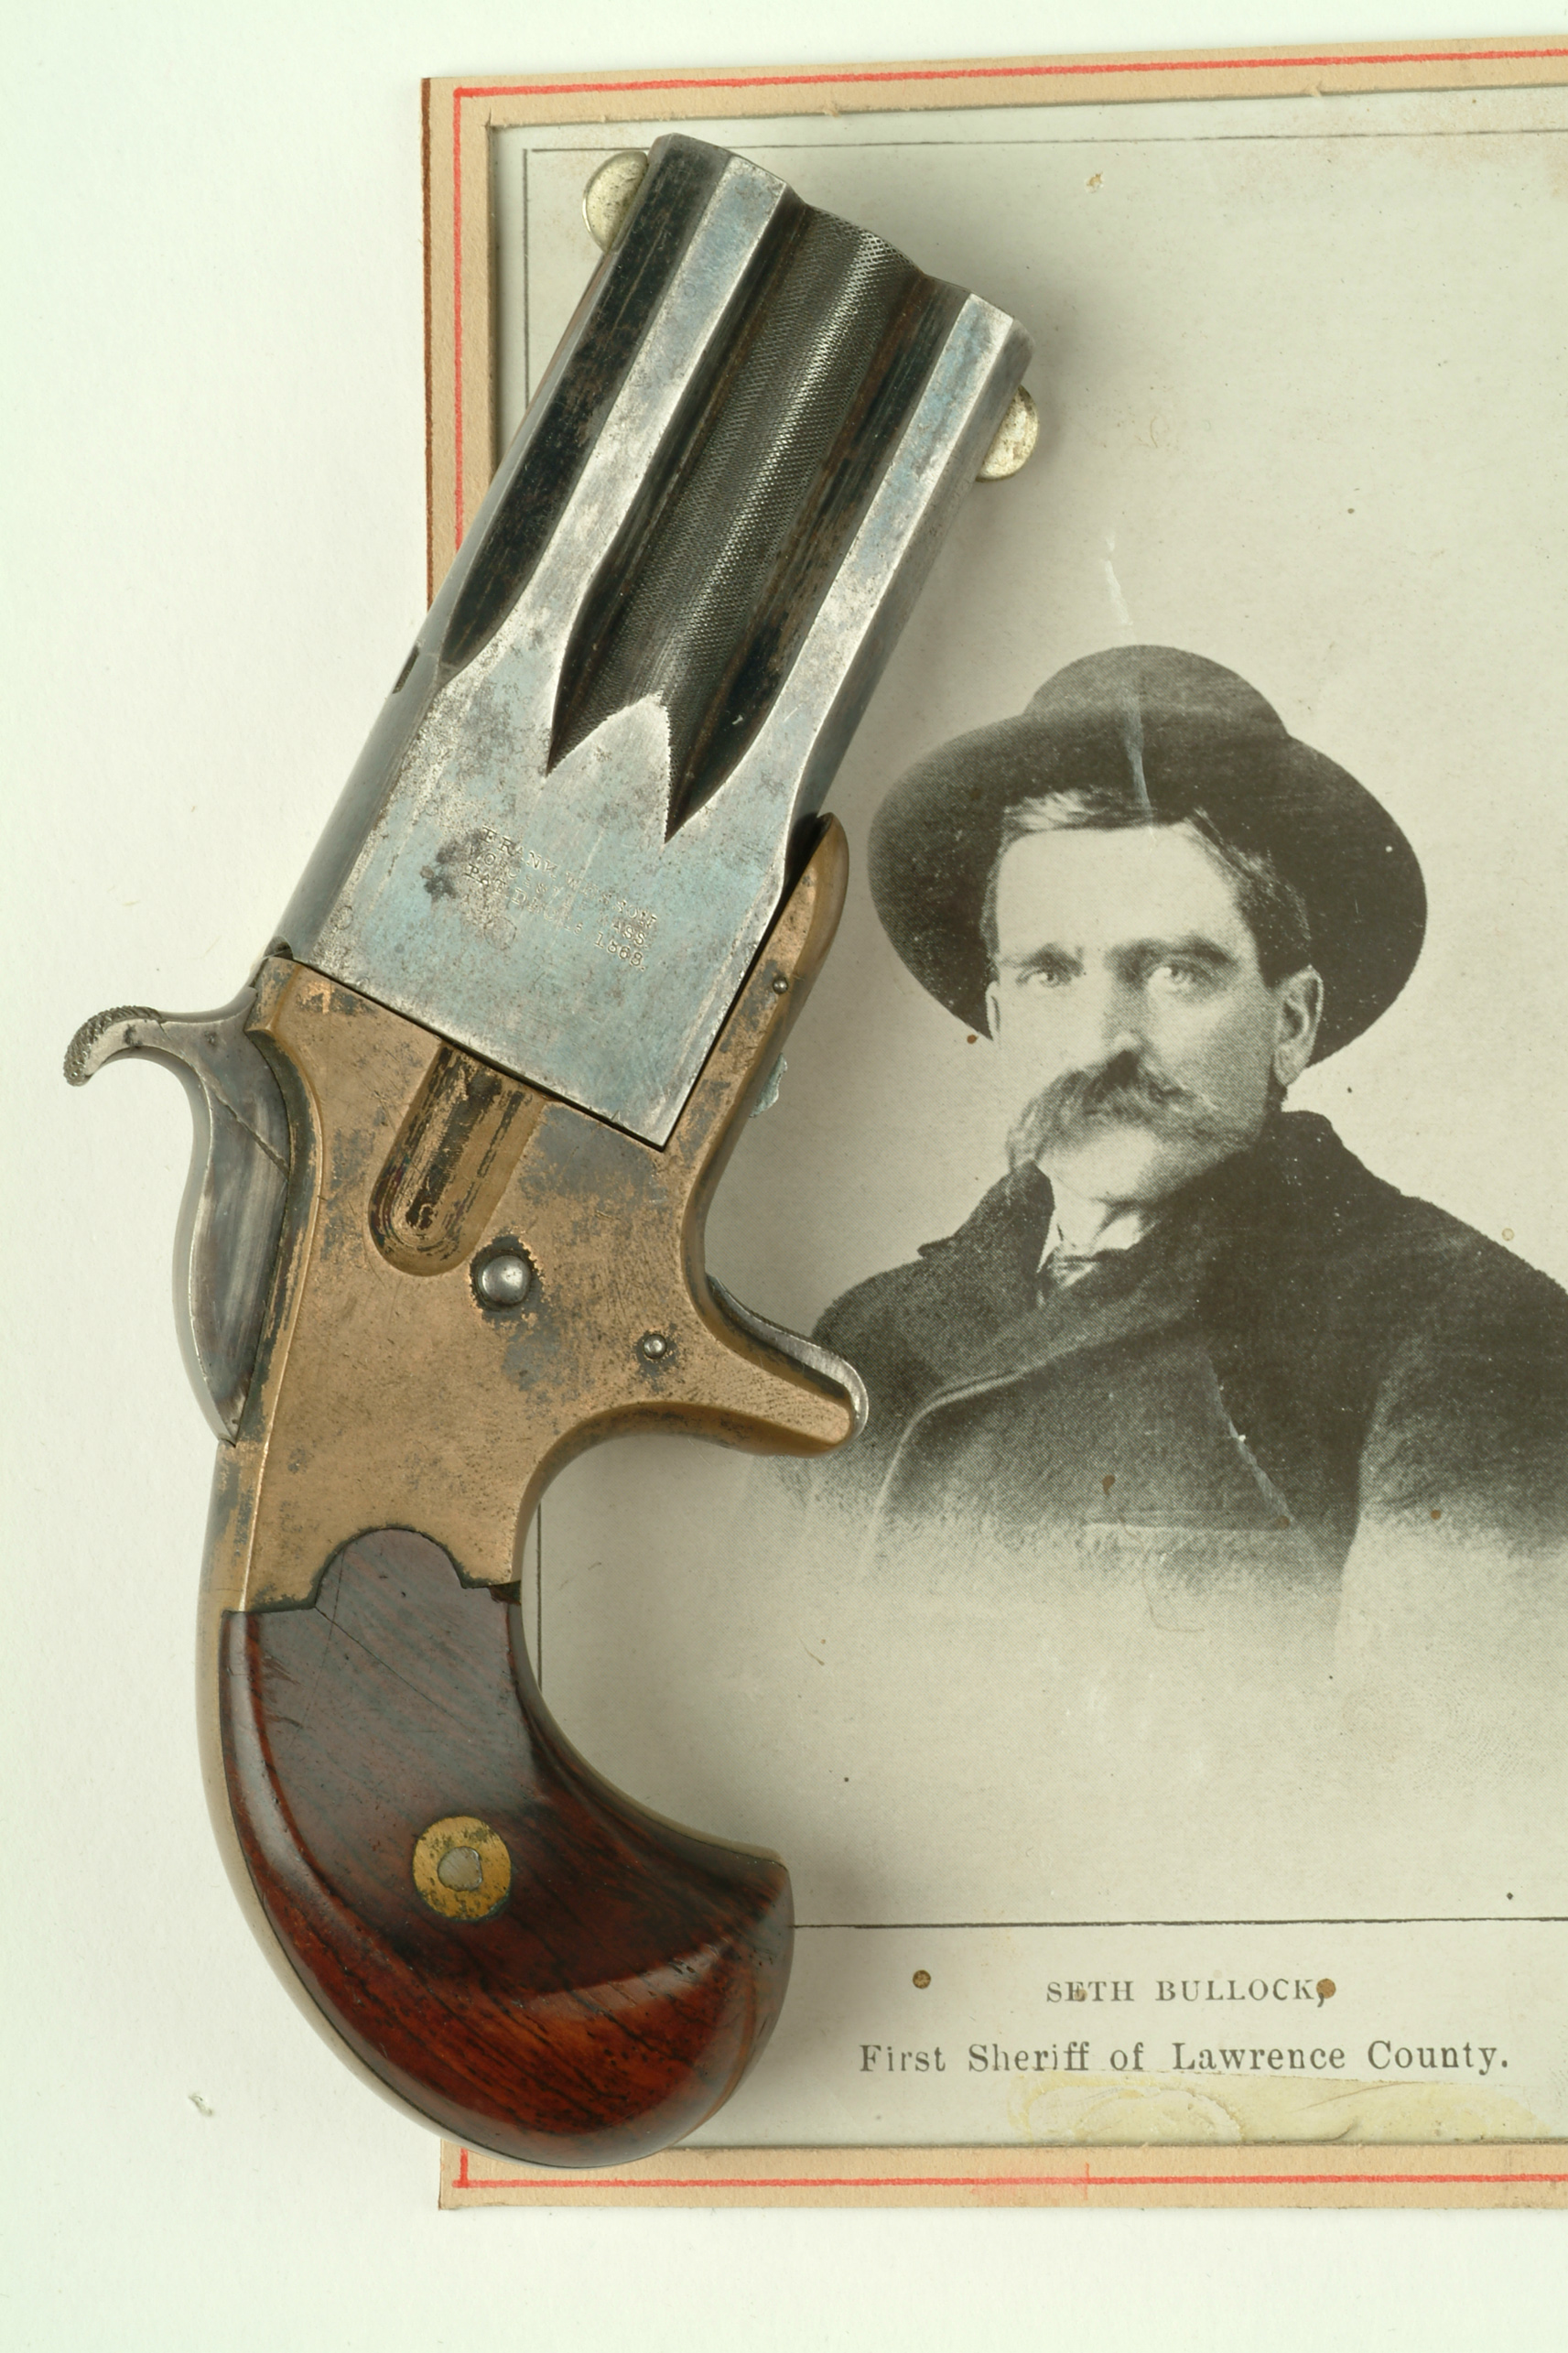 Seth Bullock:  The first Sheriff of Lawrence County, Dakota Territory. This Derringer pistol was a gift from Bullock to James Halley II, who was the first telegraph operator in the Black Hills.